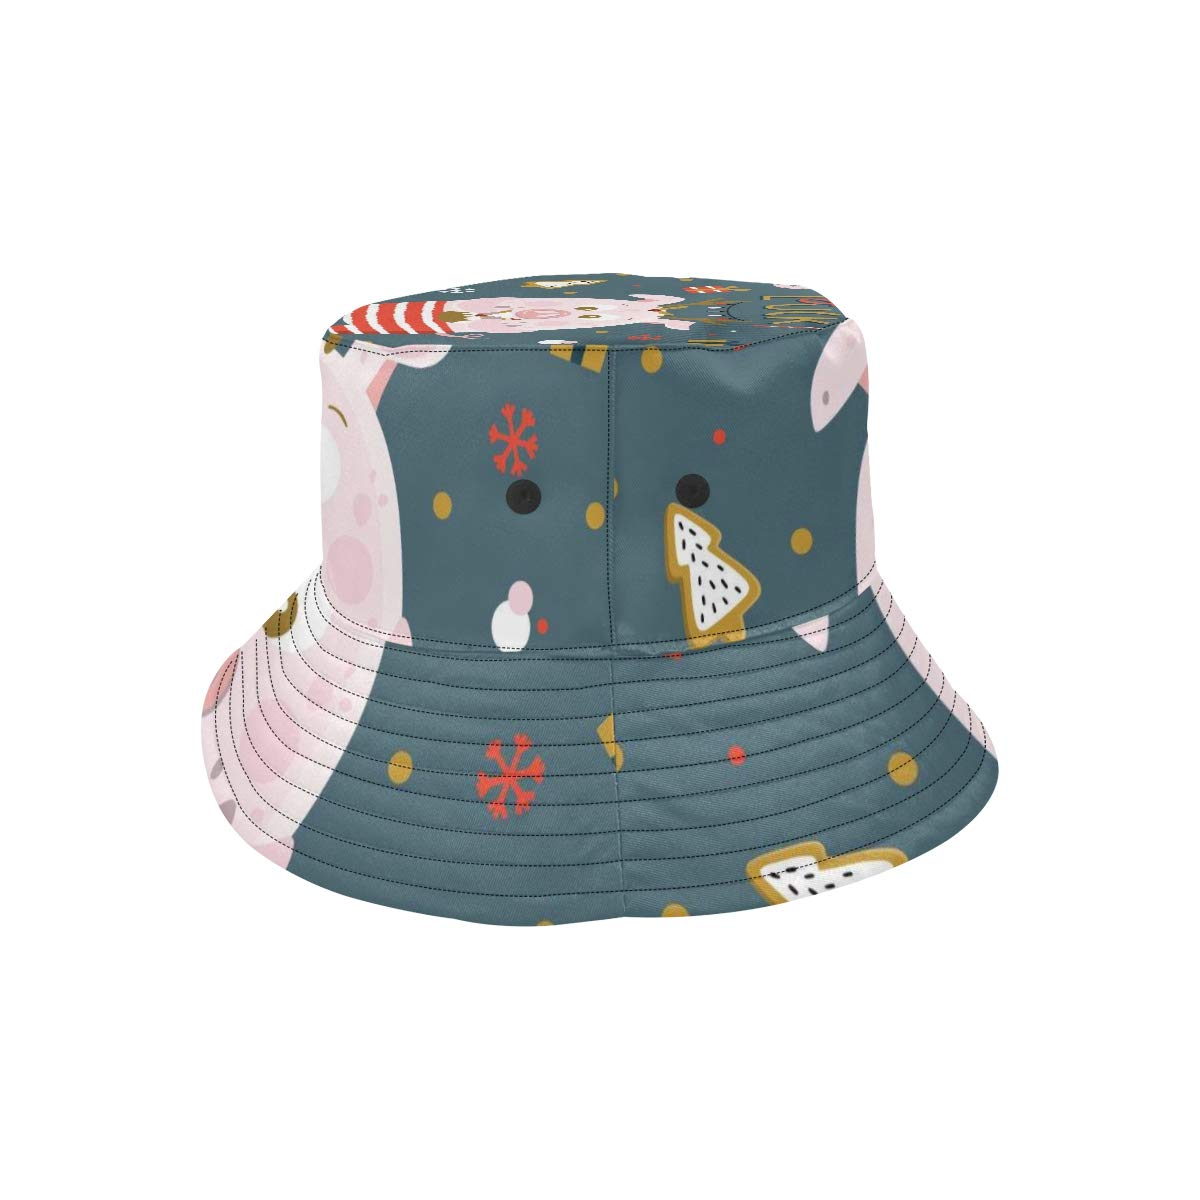 Ladies Girls Cute Cartoon Pig New Summer Unisex Cotton Fashion Fishing Sun Bucket Hats for Kid Teens Women and Men with Customize Top Packable Fisherman Cap for Outdoor Travel